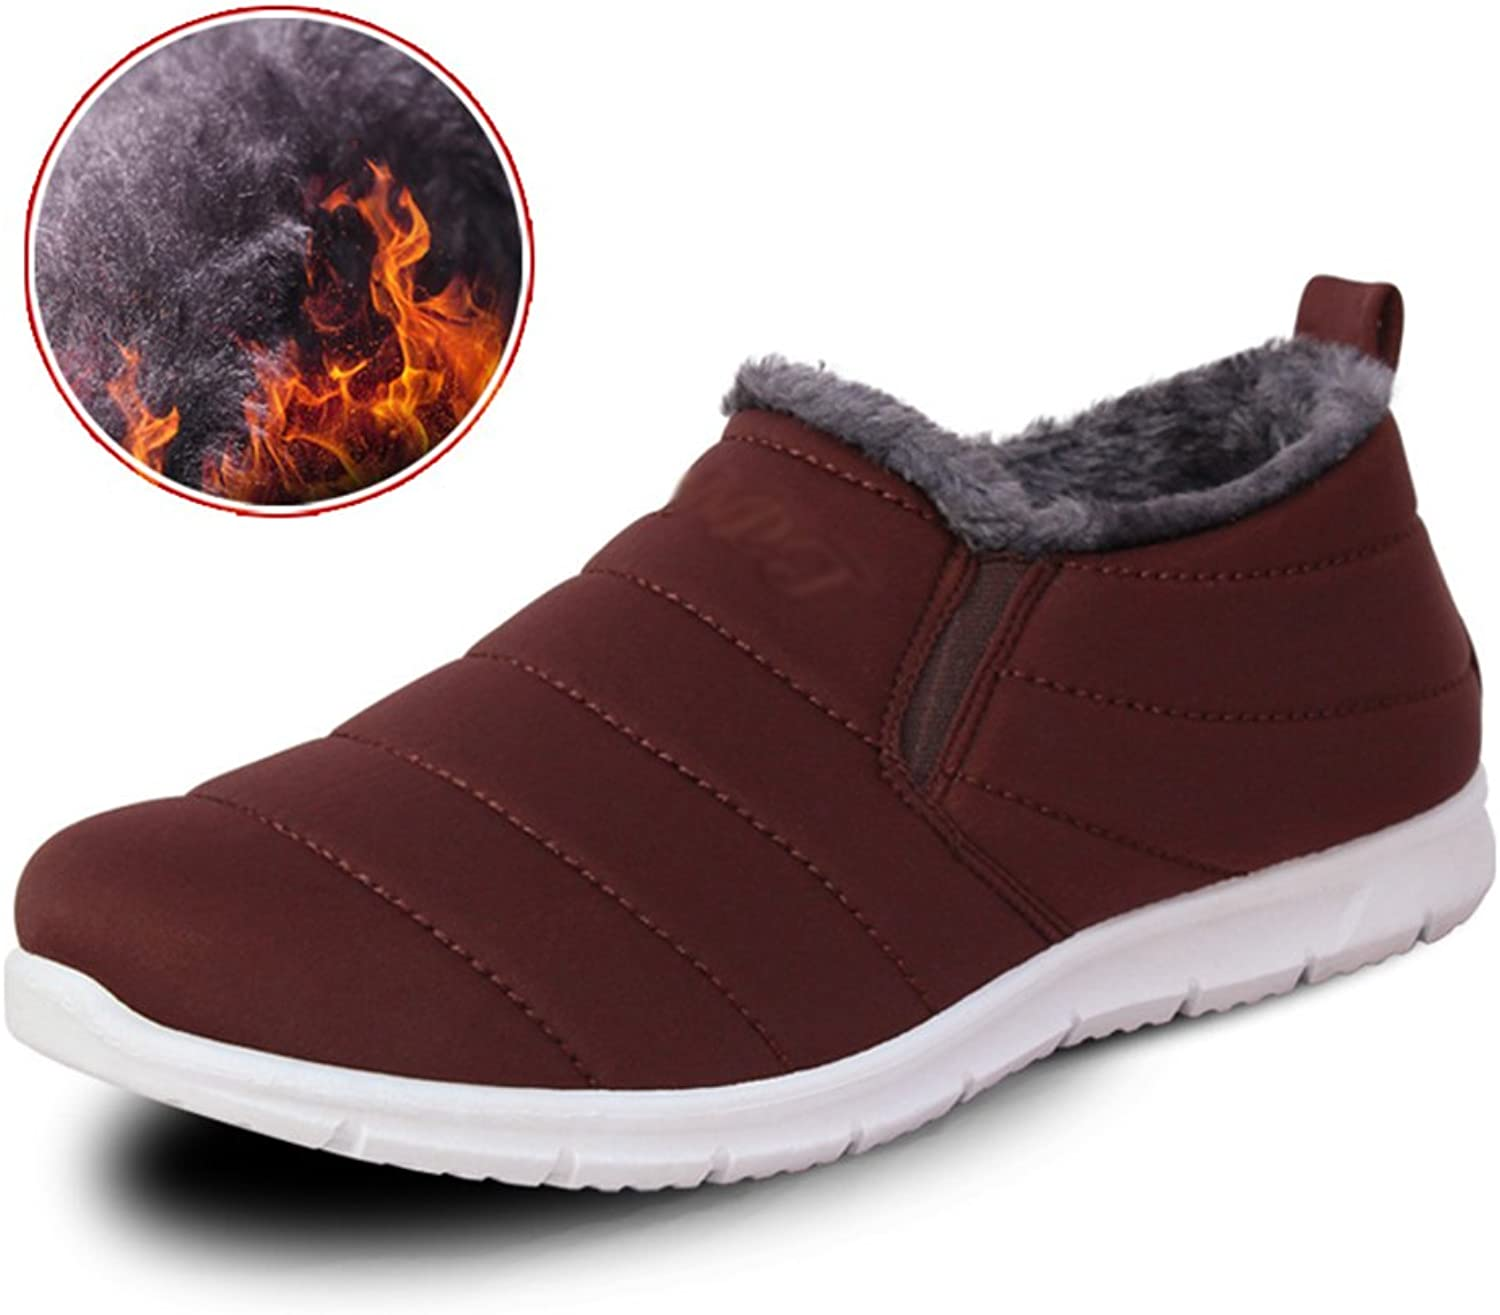 Men's shoes Feifei High-Quality Materials Trendy Leisure Winter Keep Warm 3 colors